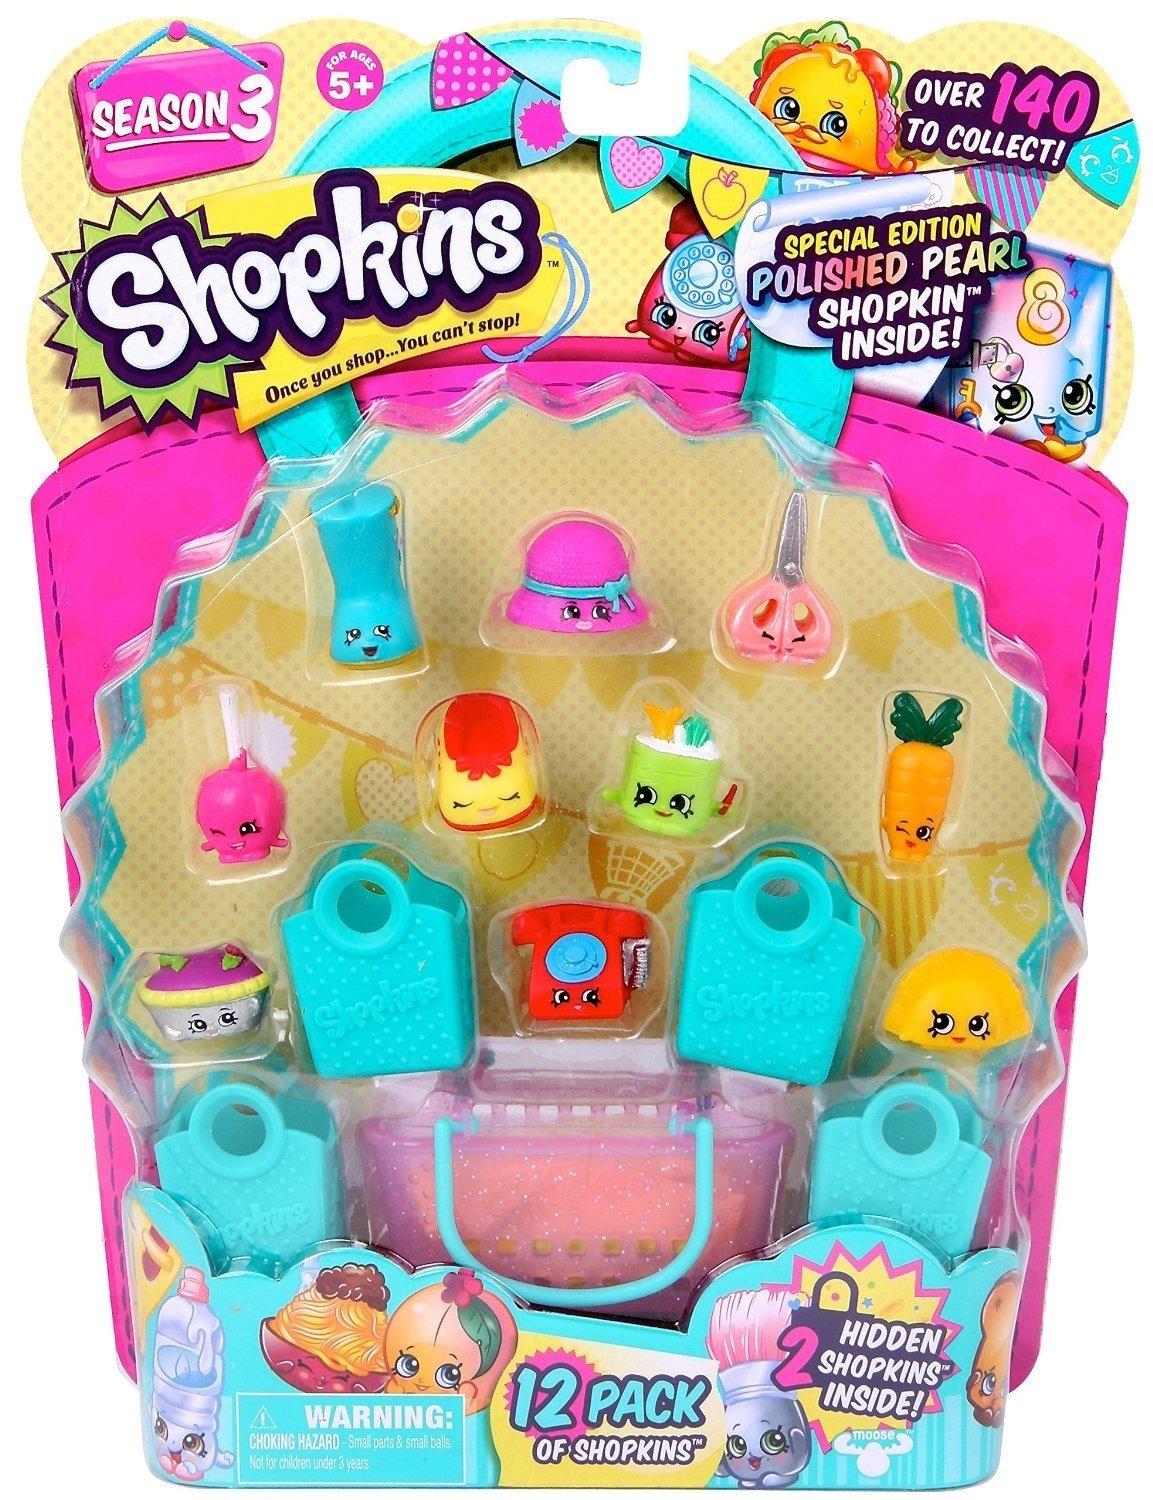 Shopkins Season 3 (12-Pack) - Characters May Vary (Discontinued by manufacturer) by Shopkins